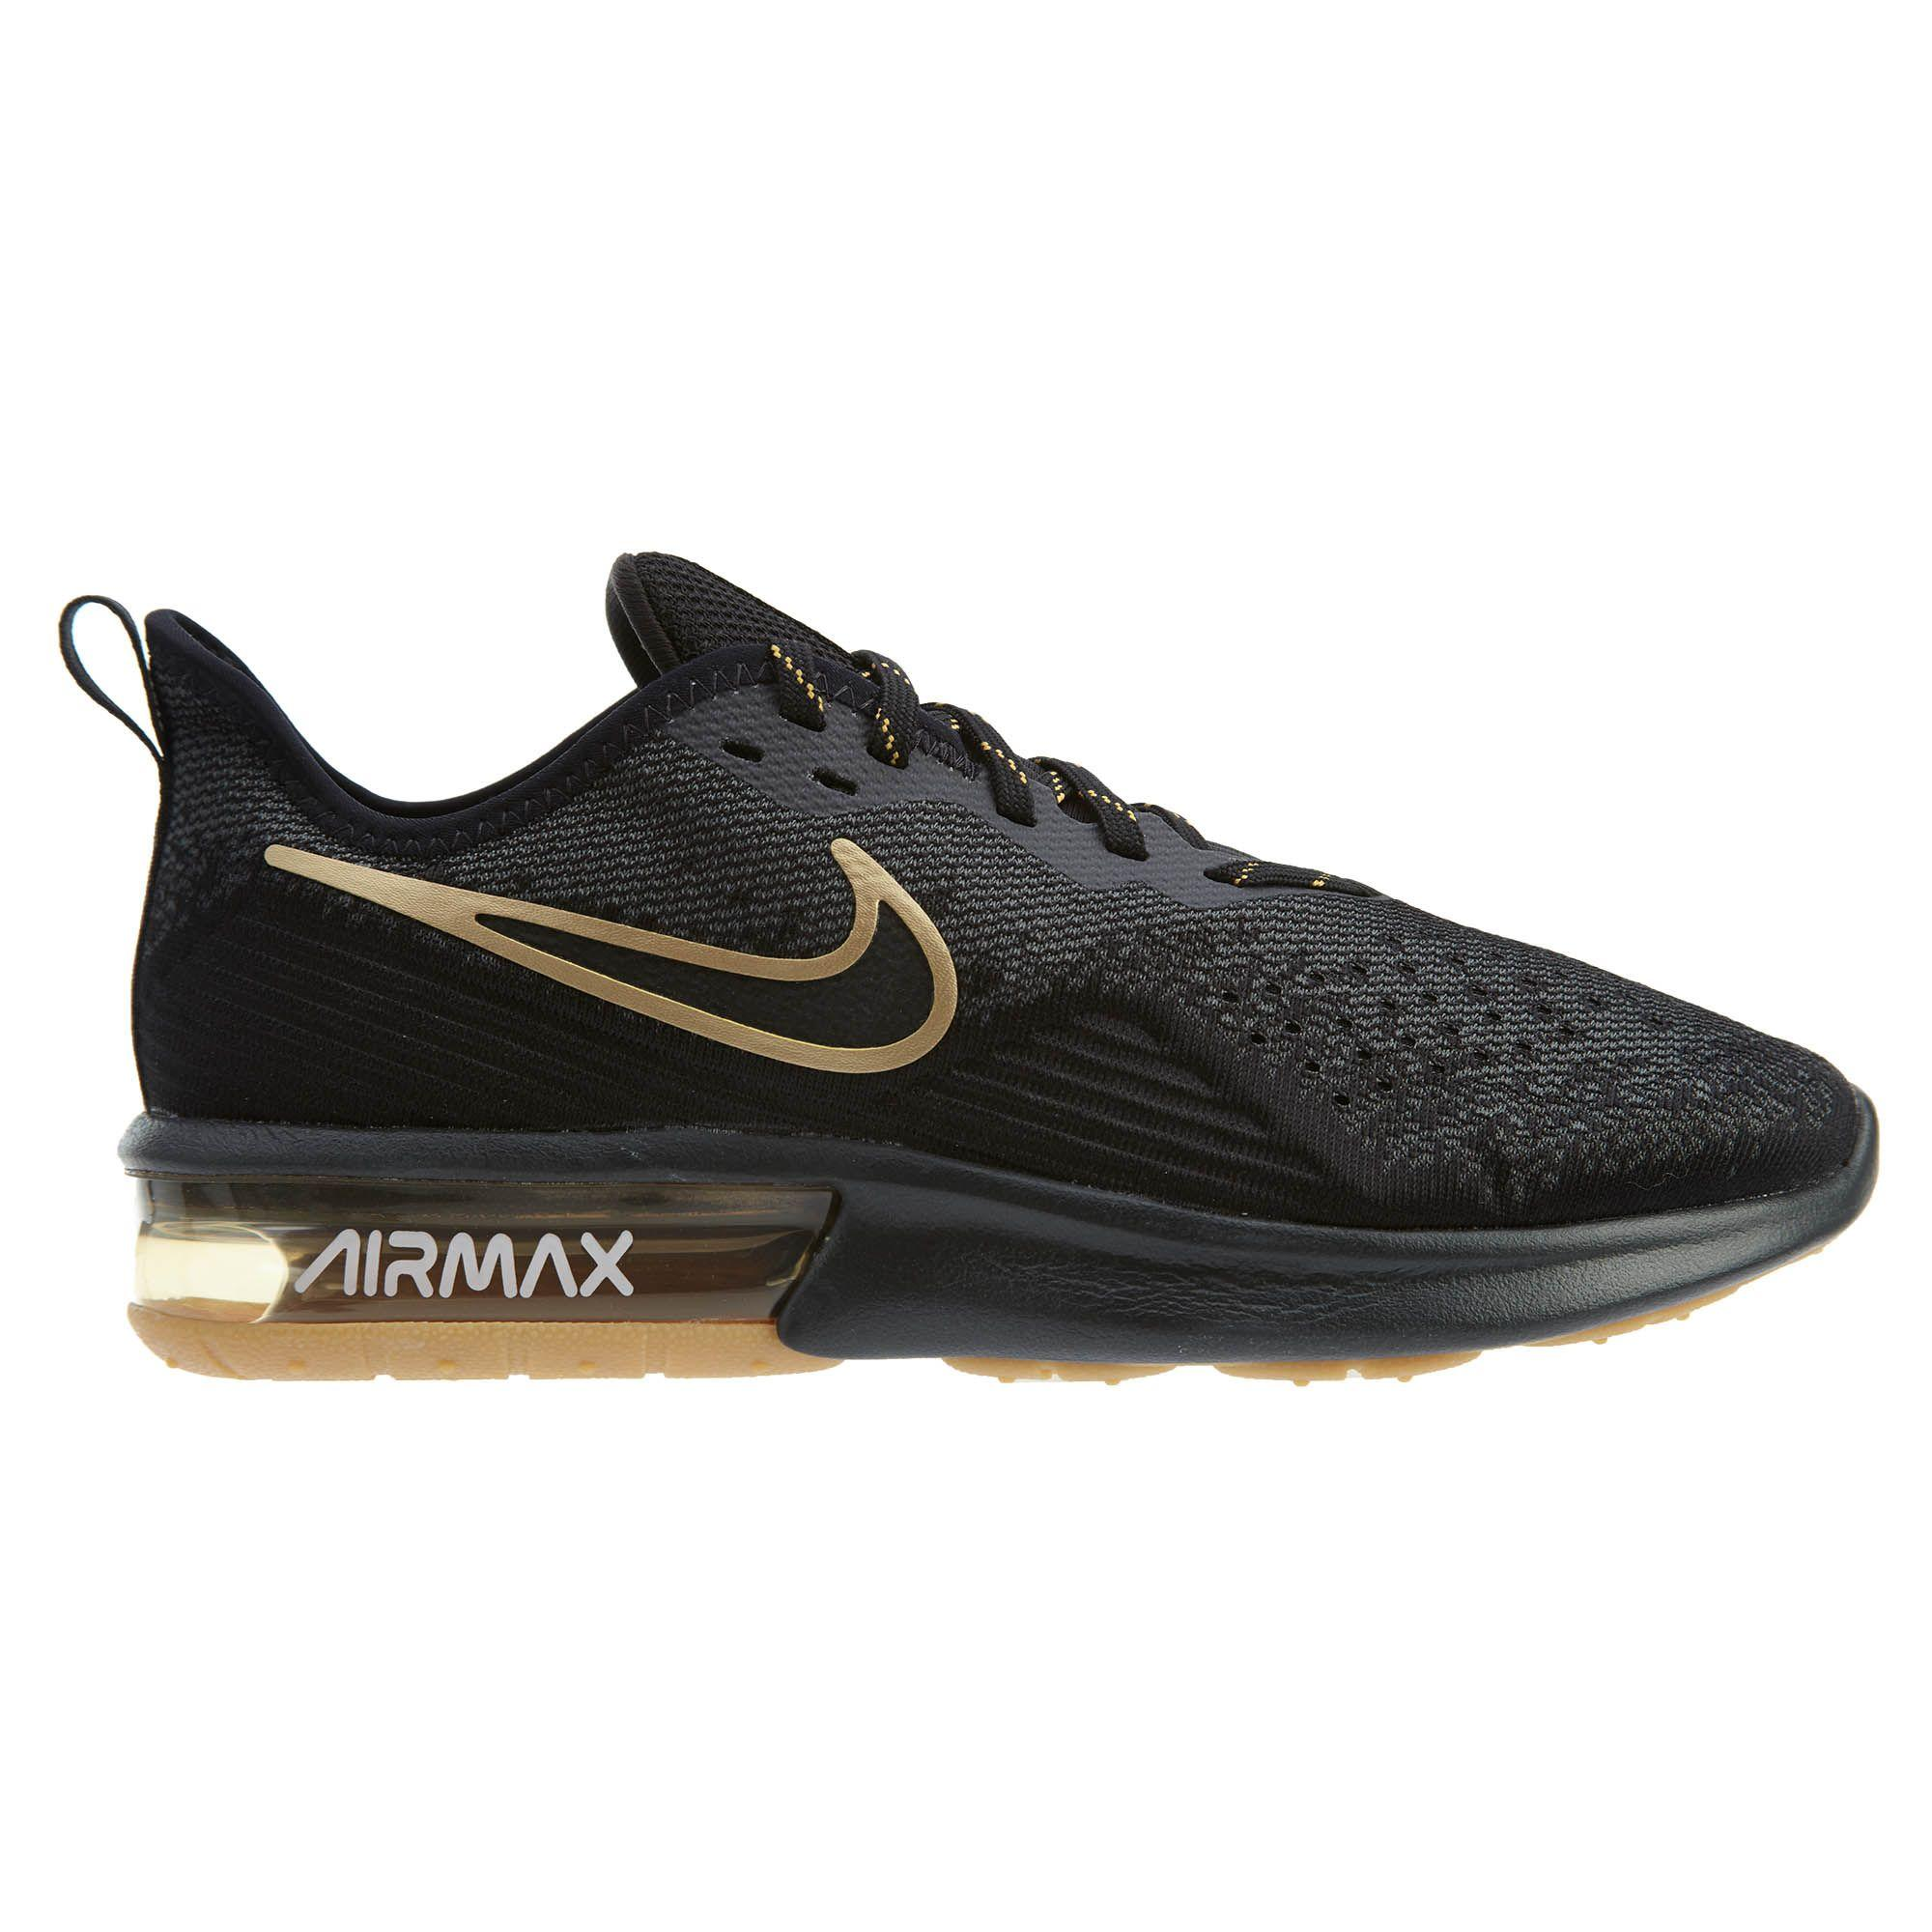 Nike Air Max Sequent 4 Men Shoes (Black Gold) AO4485 005